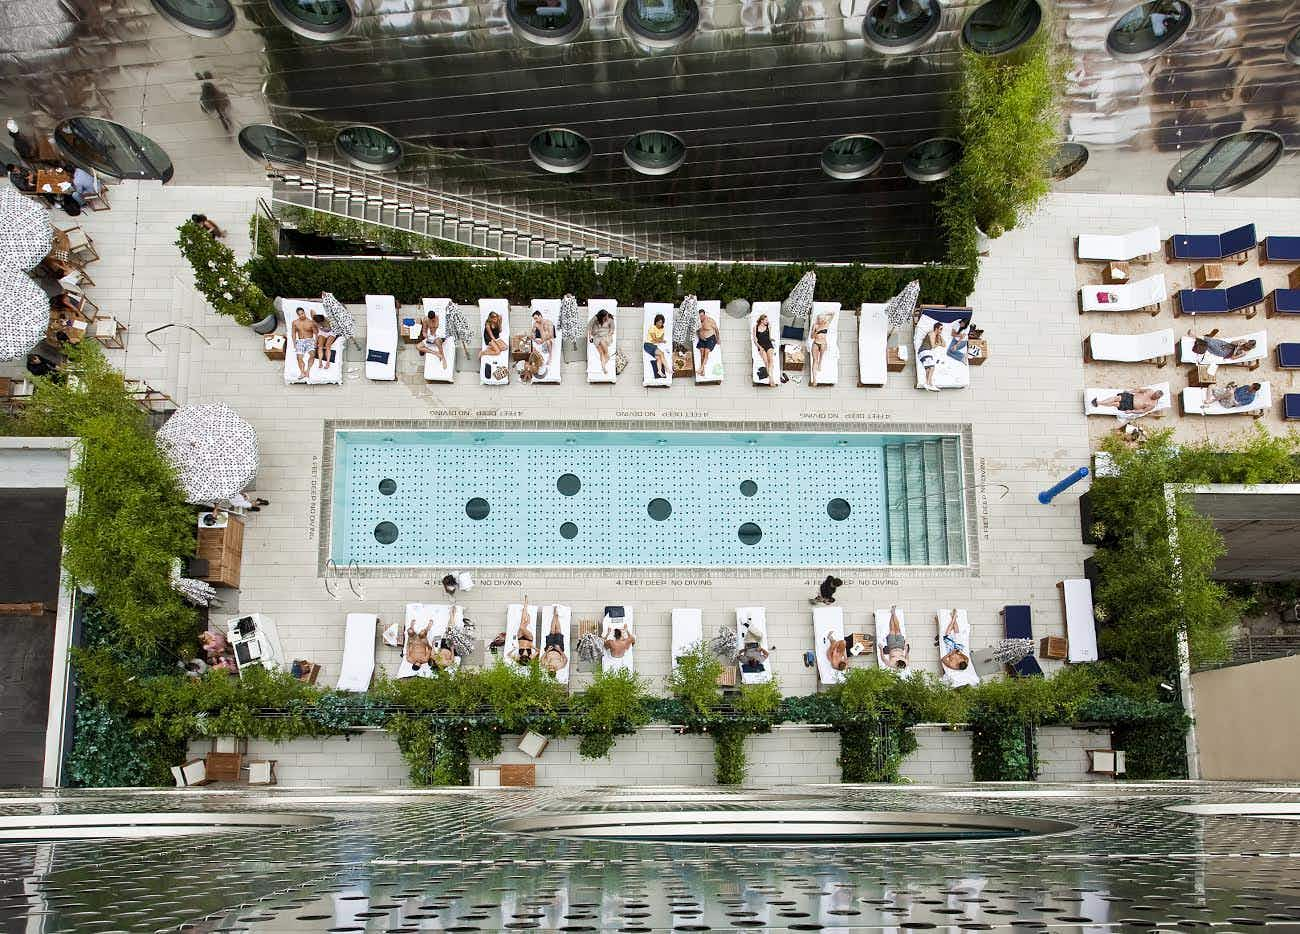 This New York rooftop pool imported sand from the Hamptons so you can stay in the city